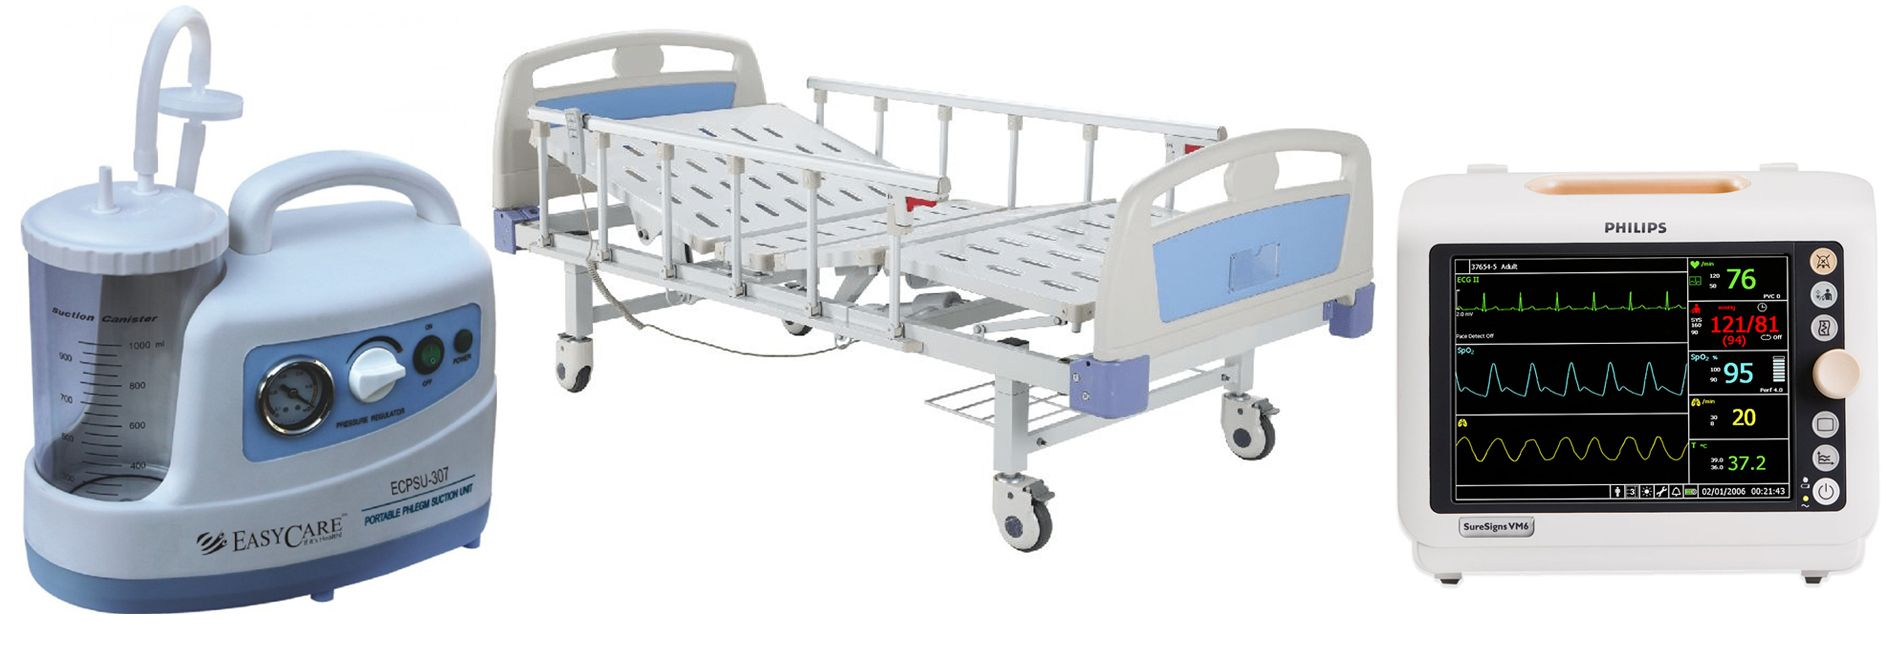 Hospital Patient Beds, Philips Patient Monitor